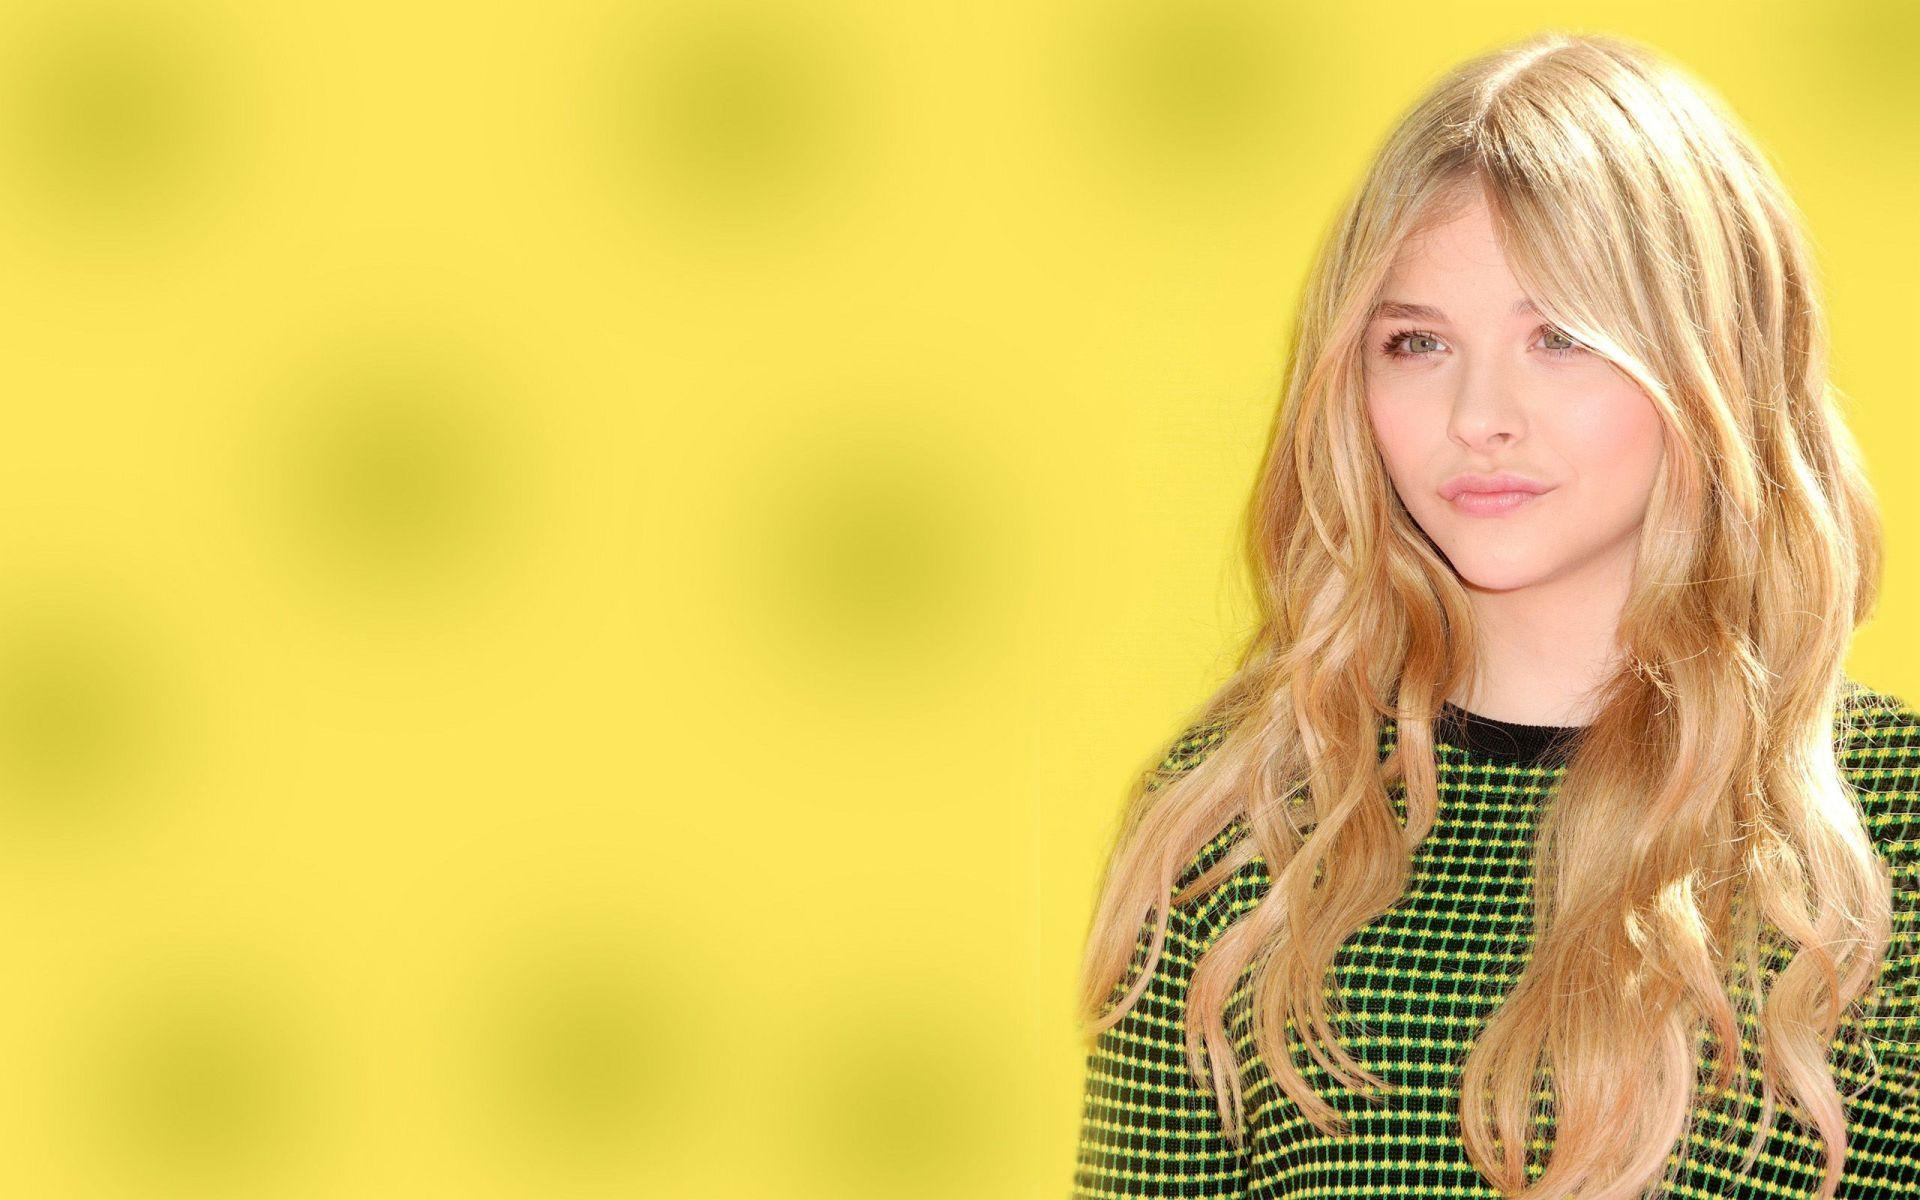 Chloë Grace Moretz HD Wallpaper Backgrounds Wallpapers 1920×1200